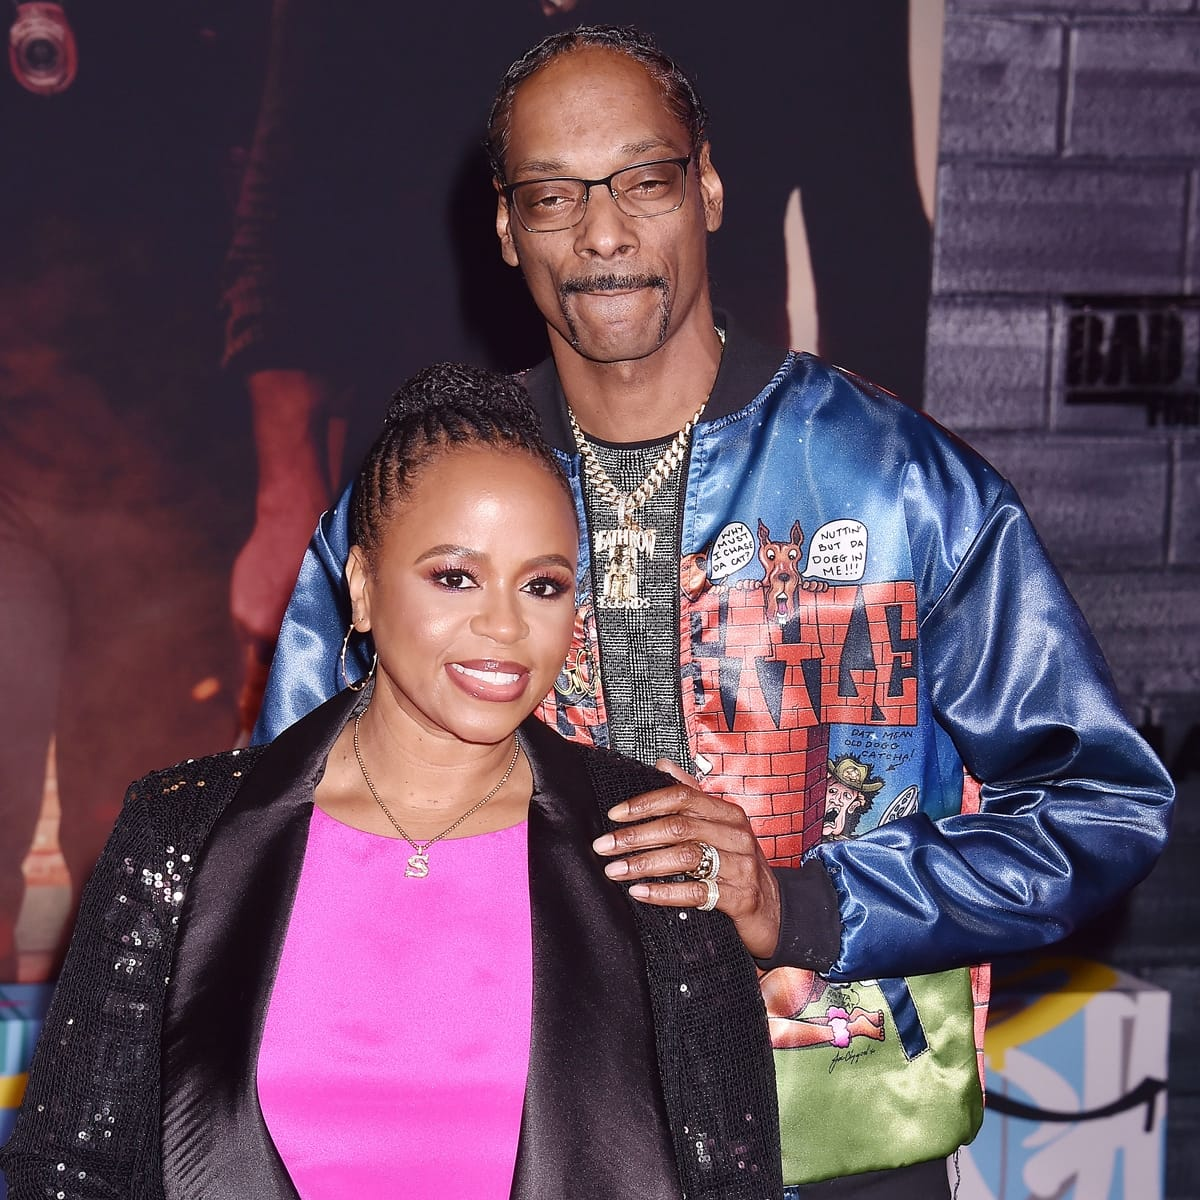 Snoop Dogg appointed his wife, Shante Broadus, to his executive team as his manager in June 2021